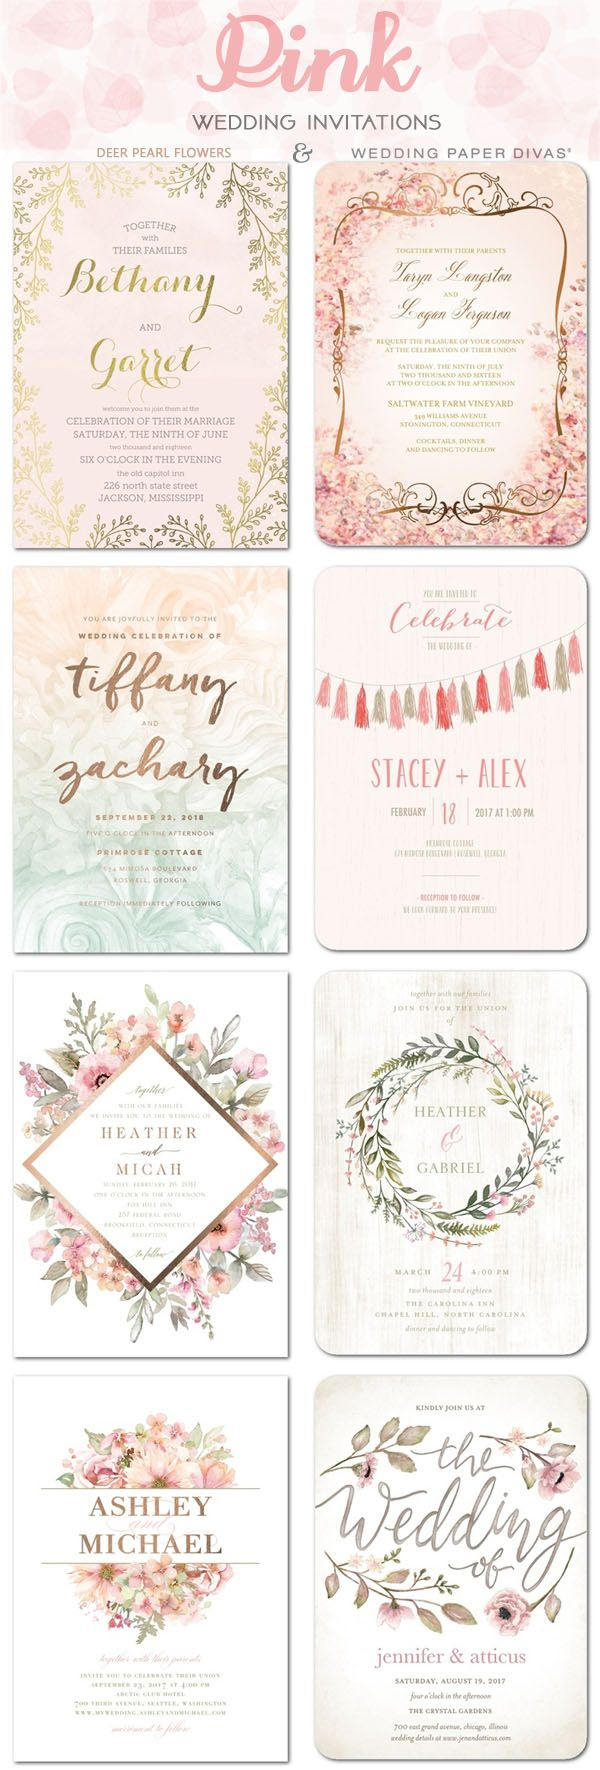 Top 8 Themed Shutterfly Wedding Invitations Pink Wedding